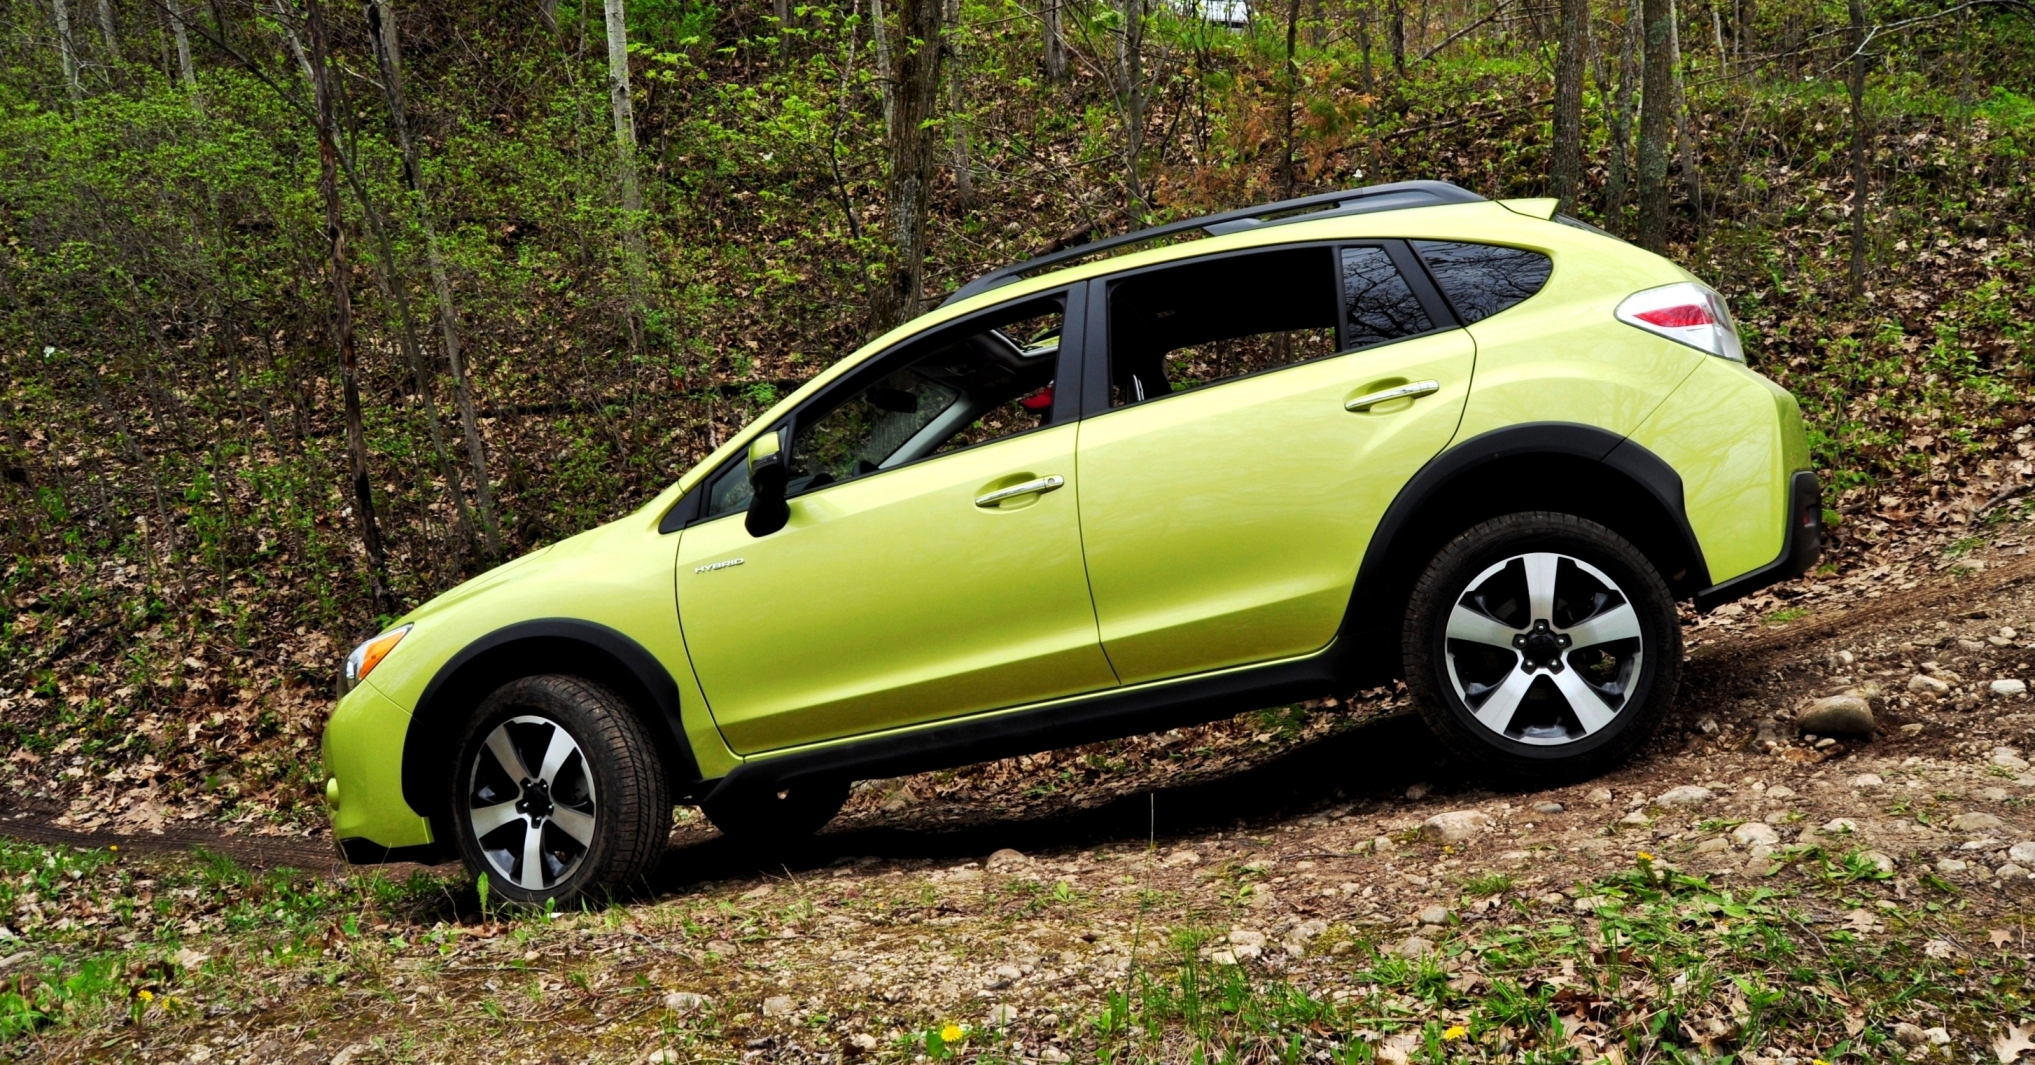 off road test review 2014 subaru xv crosstrek hybrid is surprisingly silent very capable. Black Bedroom Furniture Sets. Home Design Ideas